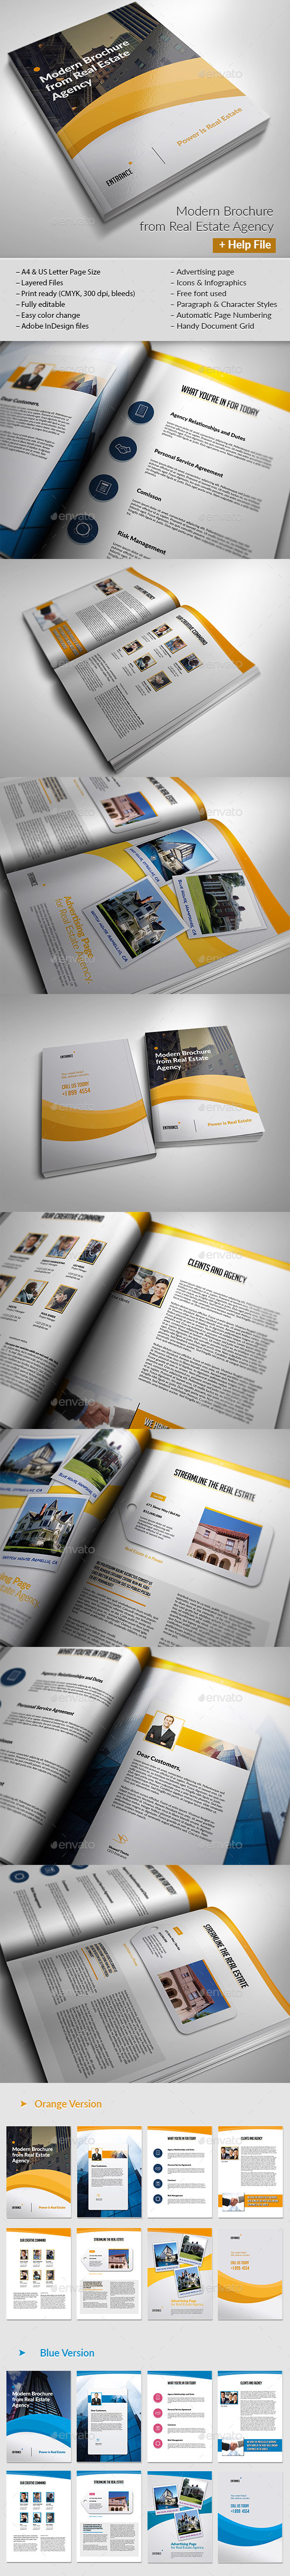 Real Estate Brochure - Brochures Print Templates